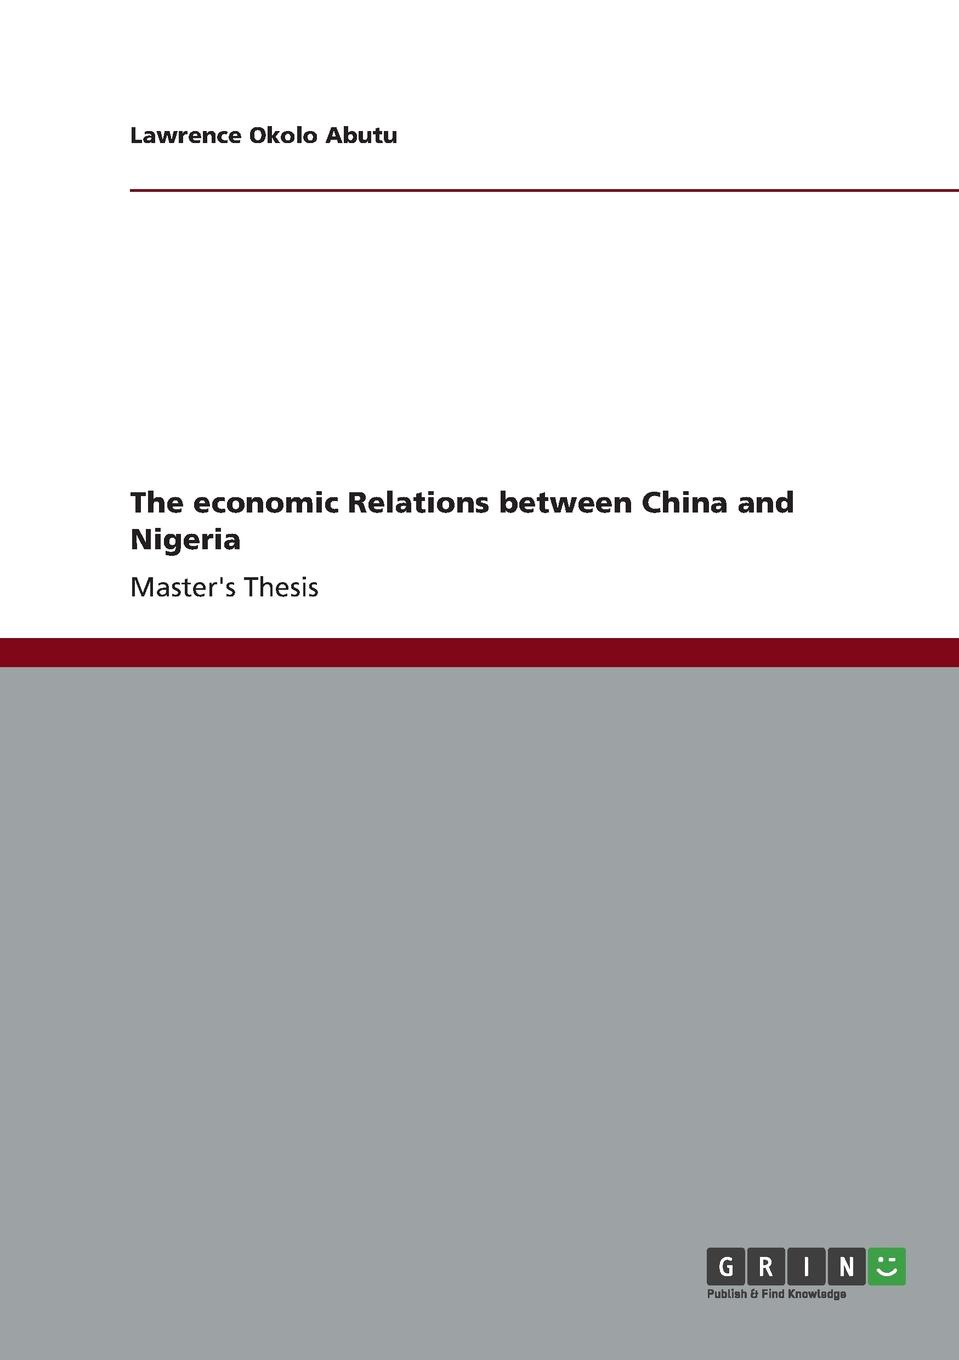 Lawrence Okolo Abutu The economic Relations between China and Nigeria vishaal kishore ricardo s gauntlet economic fiction and the flawed case for free trade